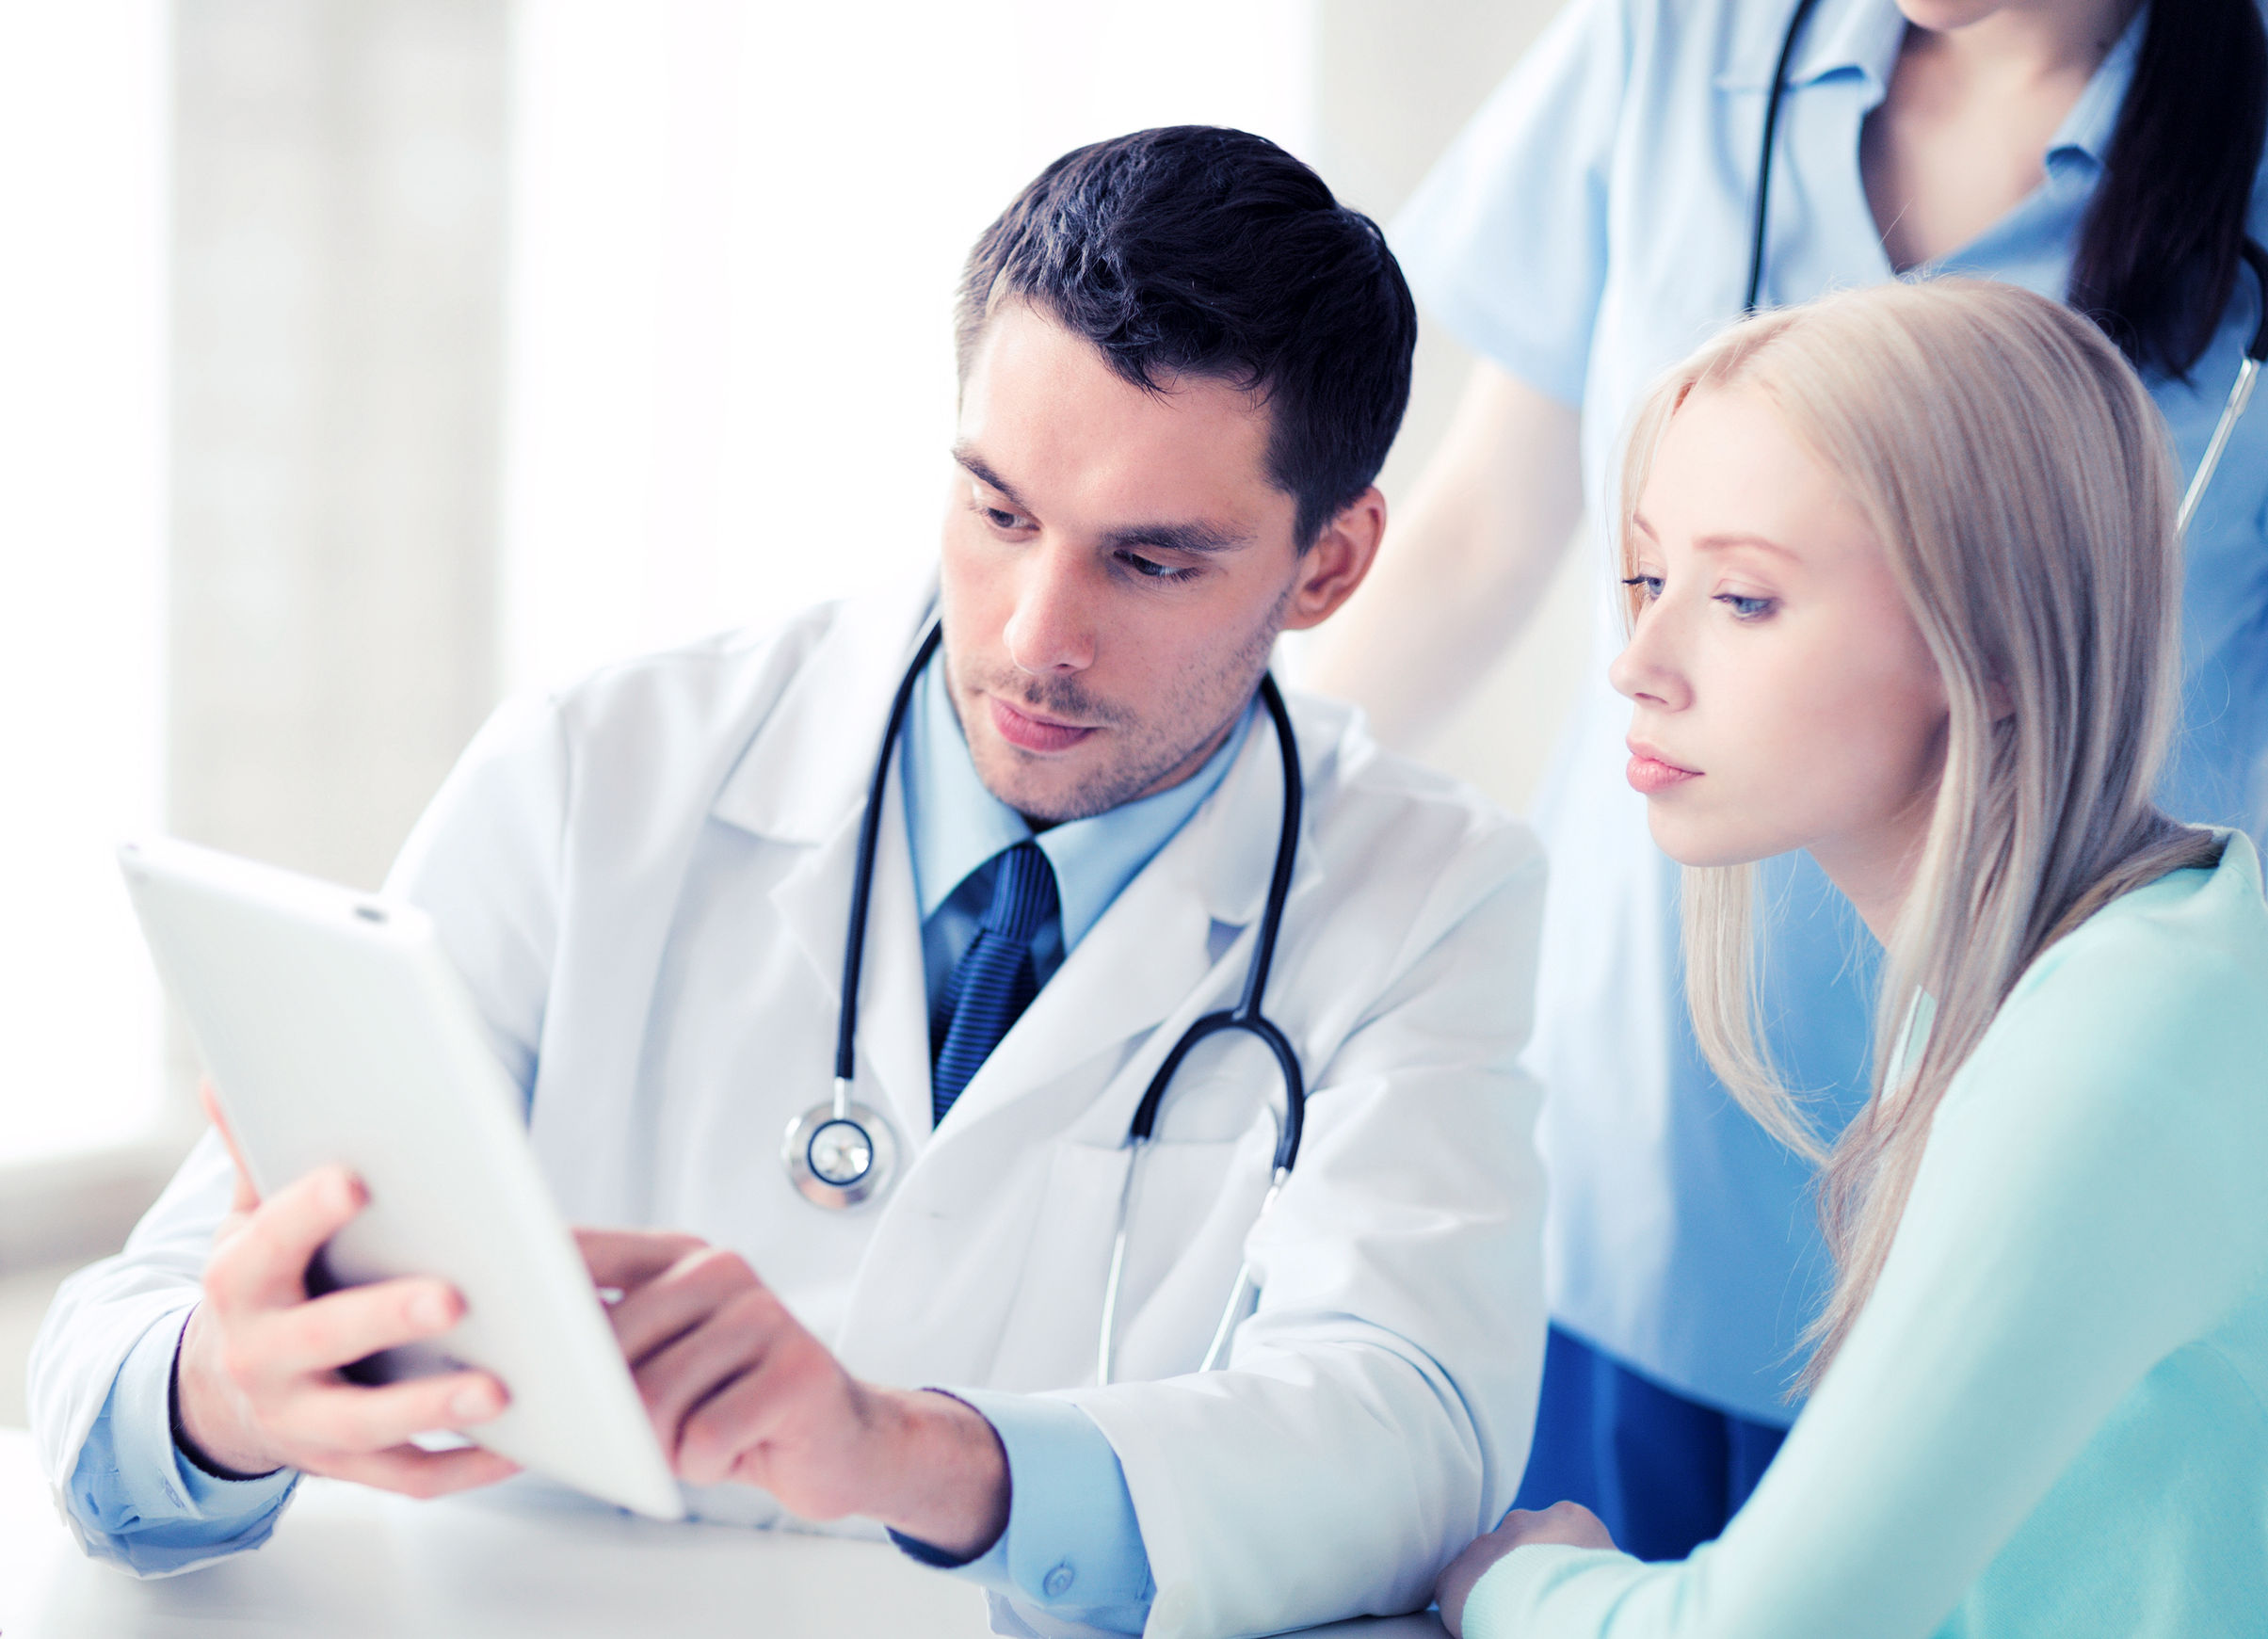 doctor showing something patient on tablet pc in hospital